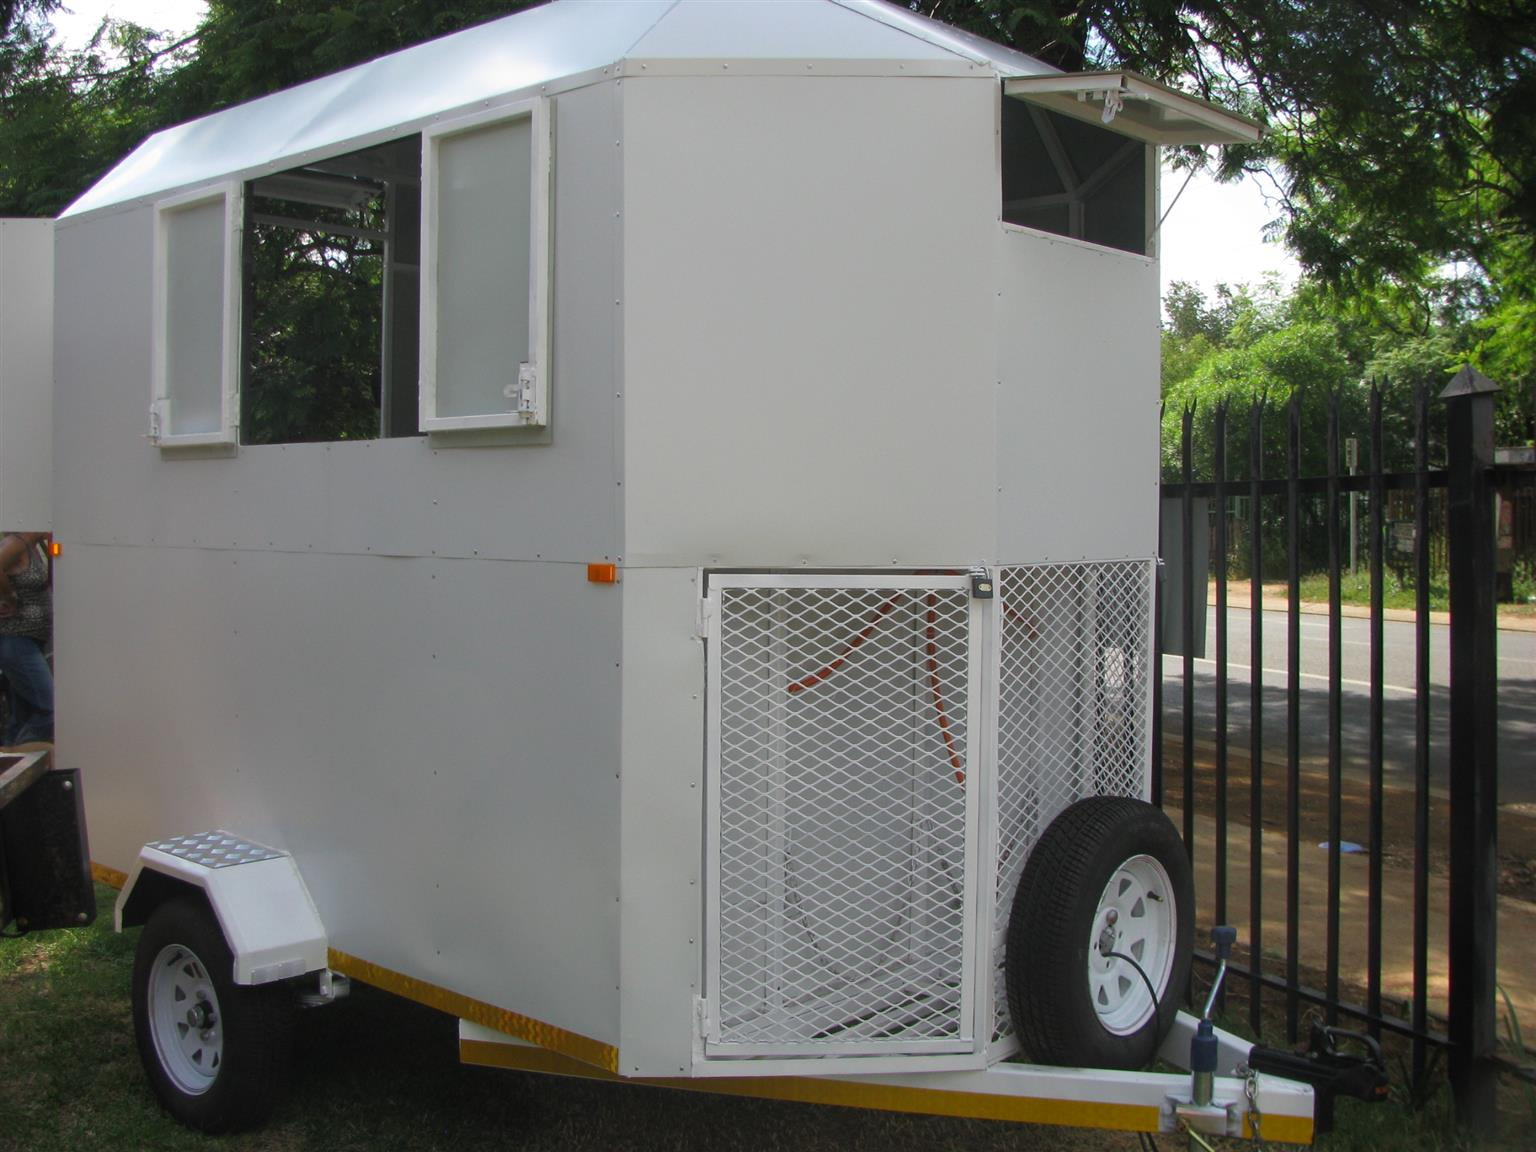 A. MOBILE FOOD KITCHEN TRAILER